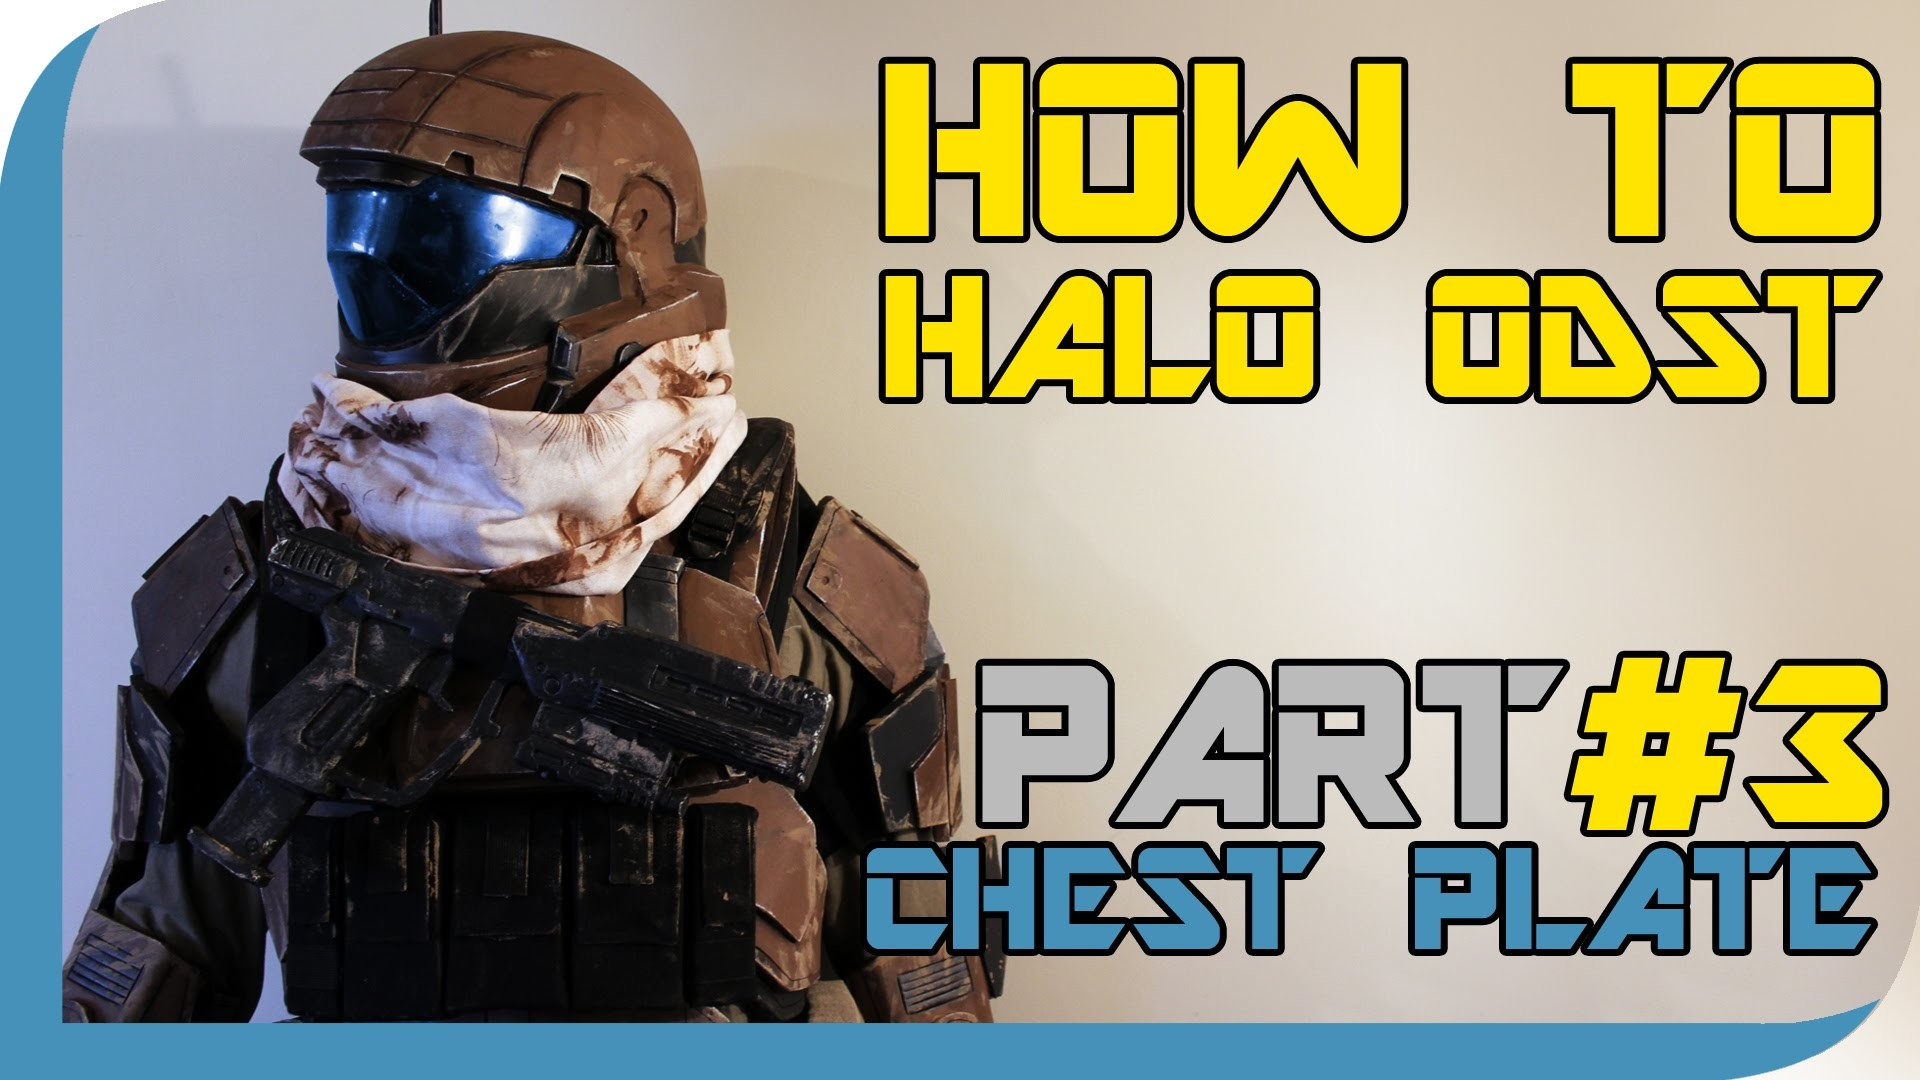 HOW TO: Halo Reach ODST Costume  ( PART 3 : Chest Plate )